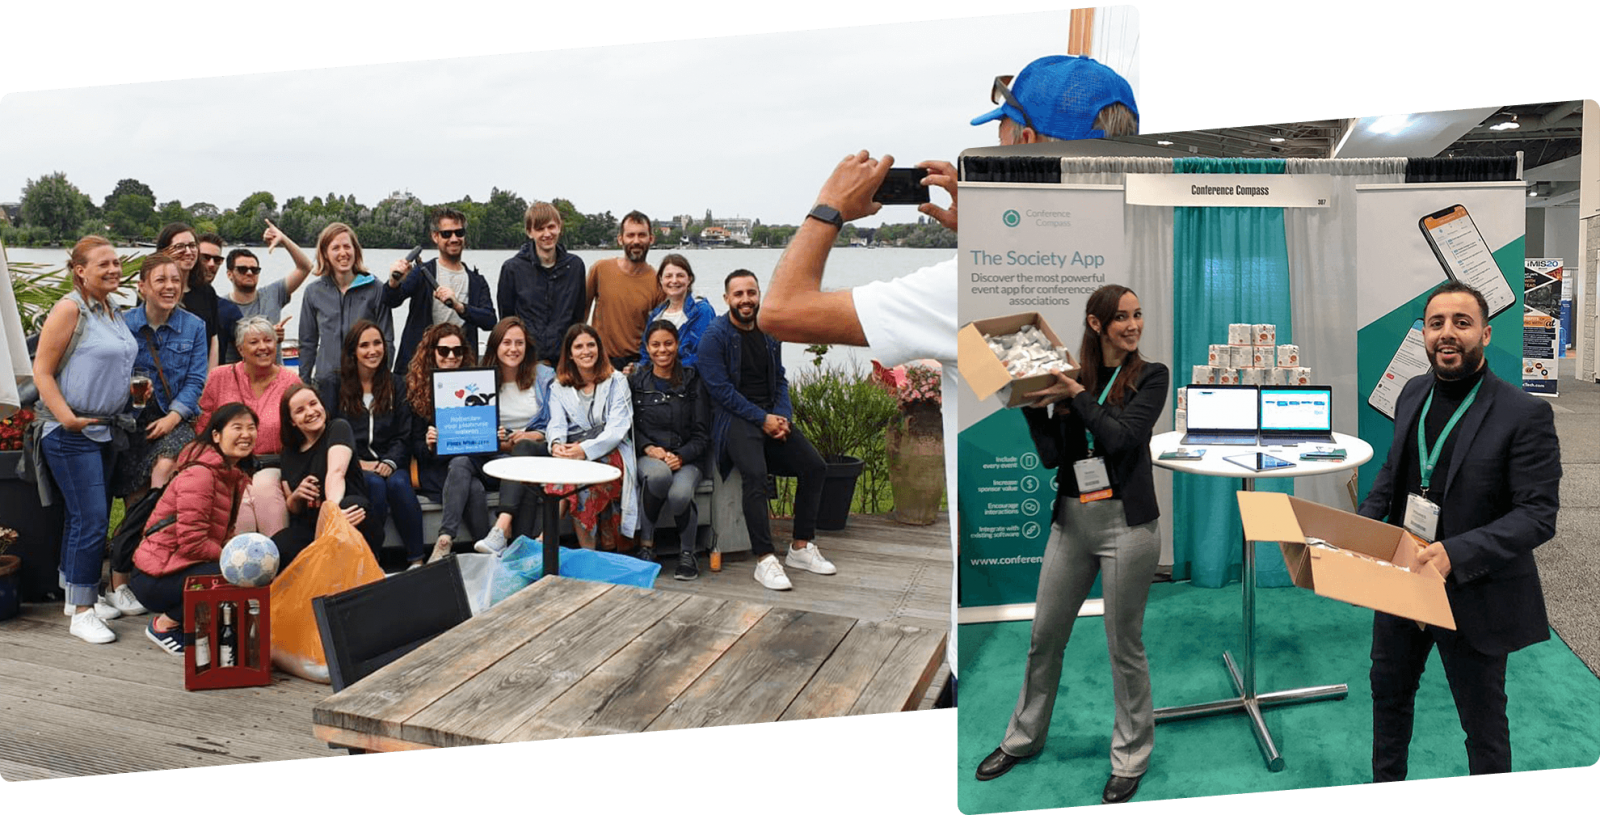 On the left, a group photo of the Conference Compass team at a lake after a day out together. On the right, two members of the team prepare their booth at a trade show, with two roll-up banners and a table with two laptops behind them, each holding a box of stroopwafels